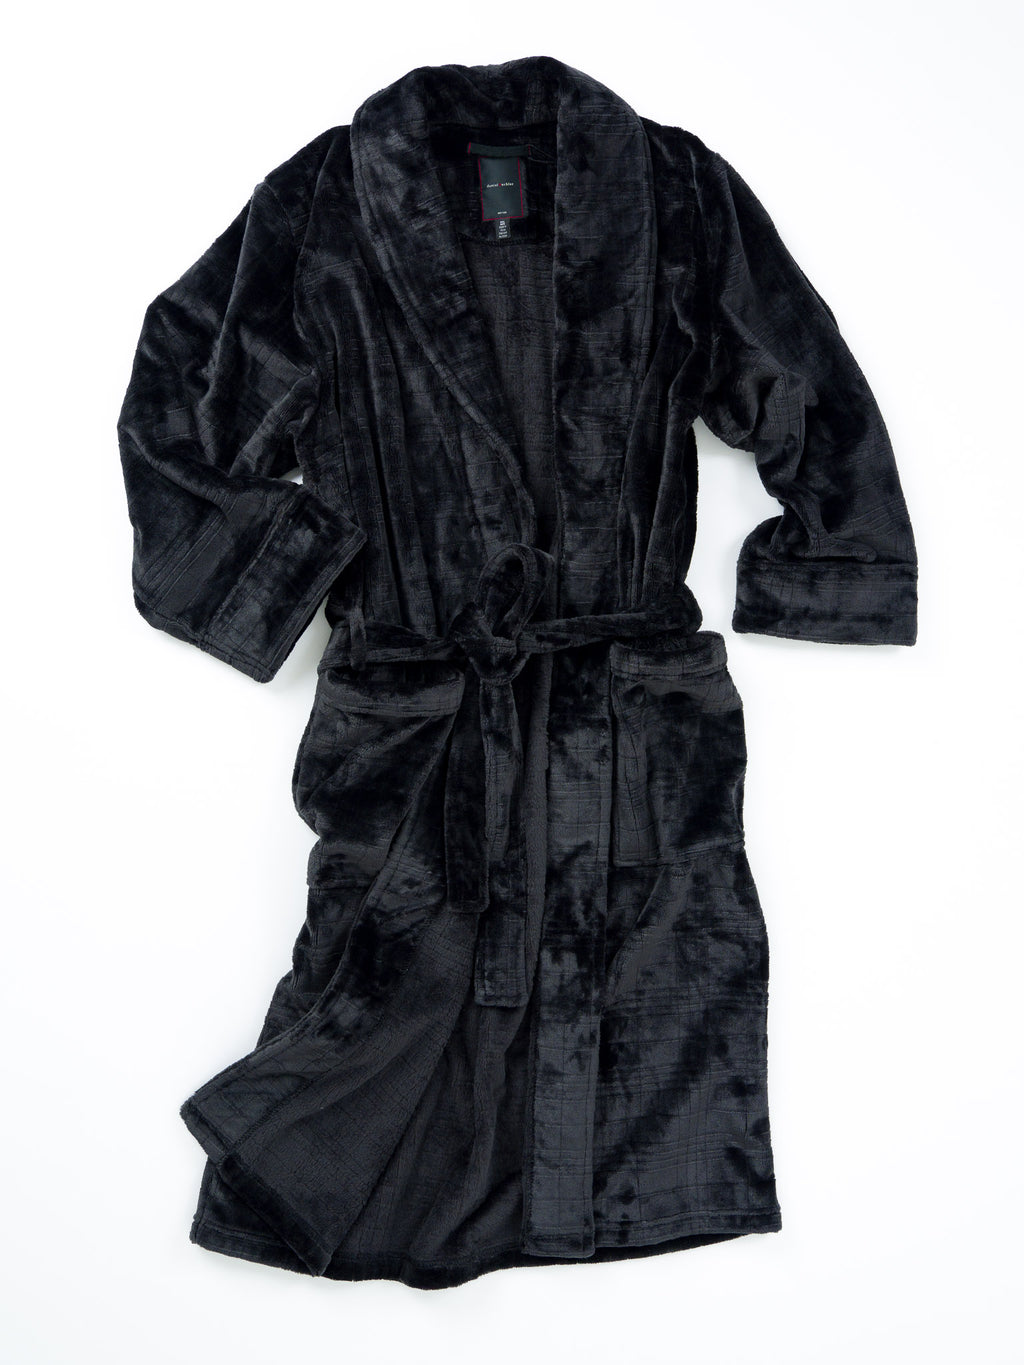 Plush Polyester Square Jacquard Robe - 2 colors available